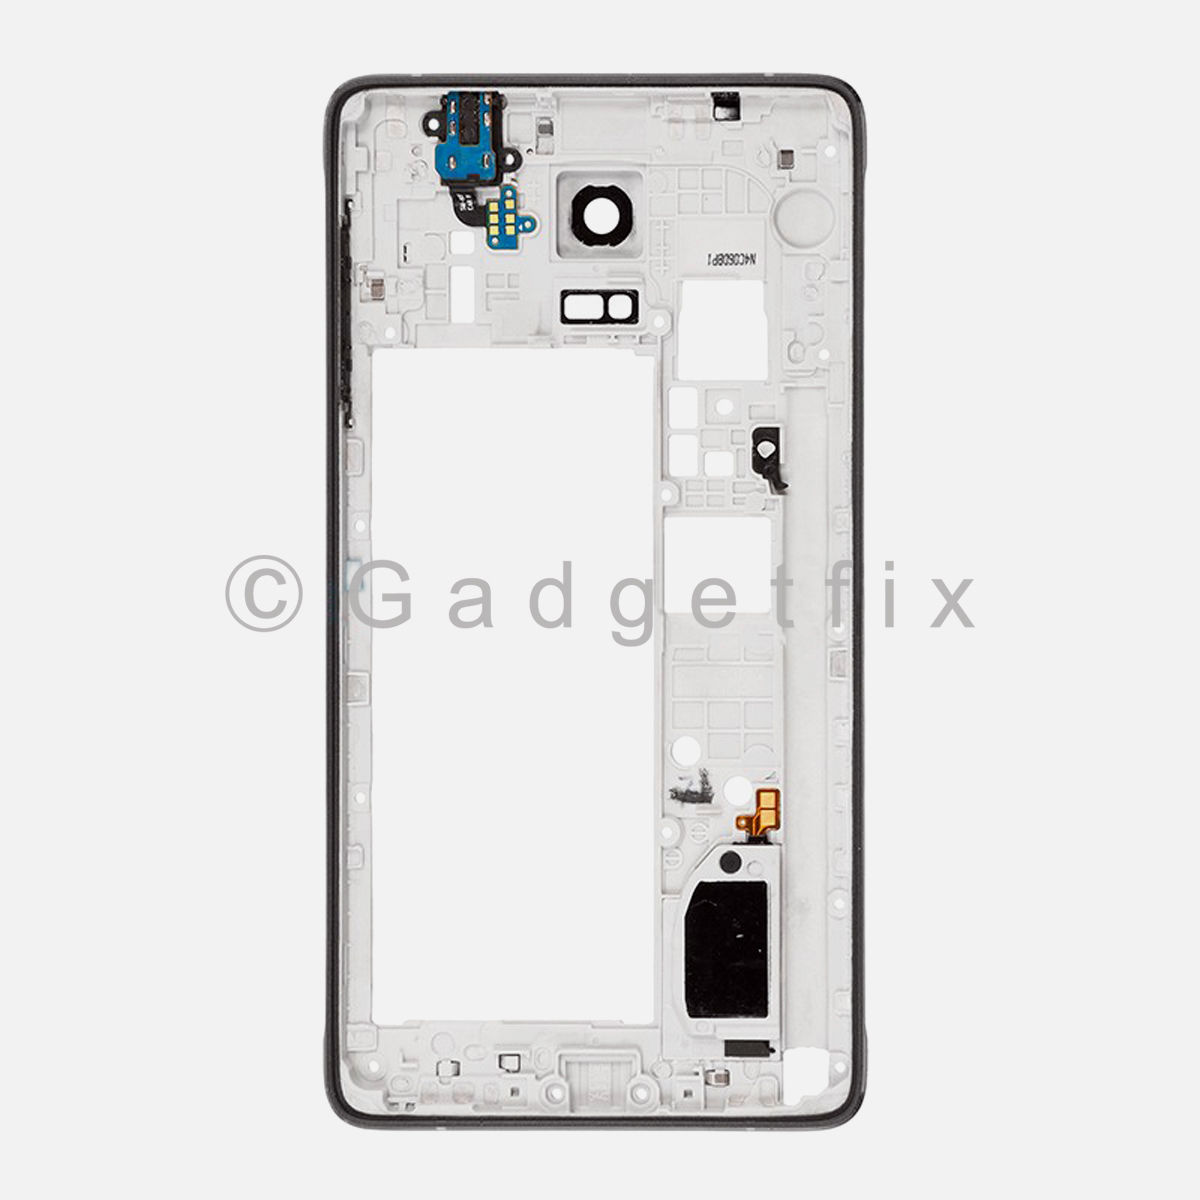 Samsung Galaxy Note 4 N910A N910T N910F Middle Frame Housing Bezel Camera Cover